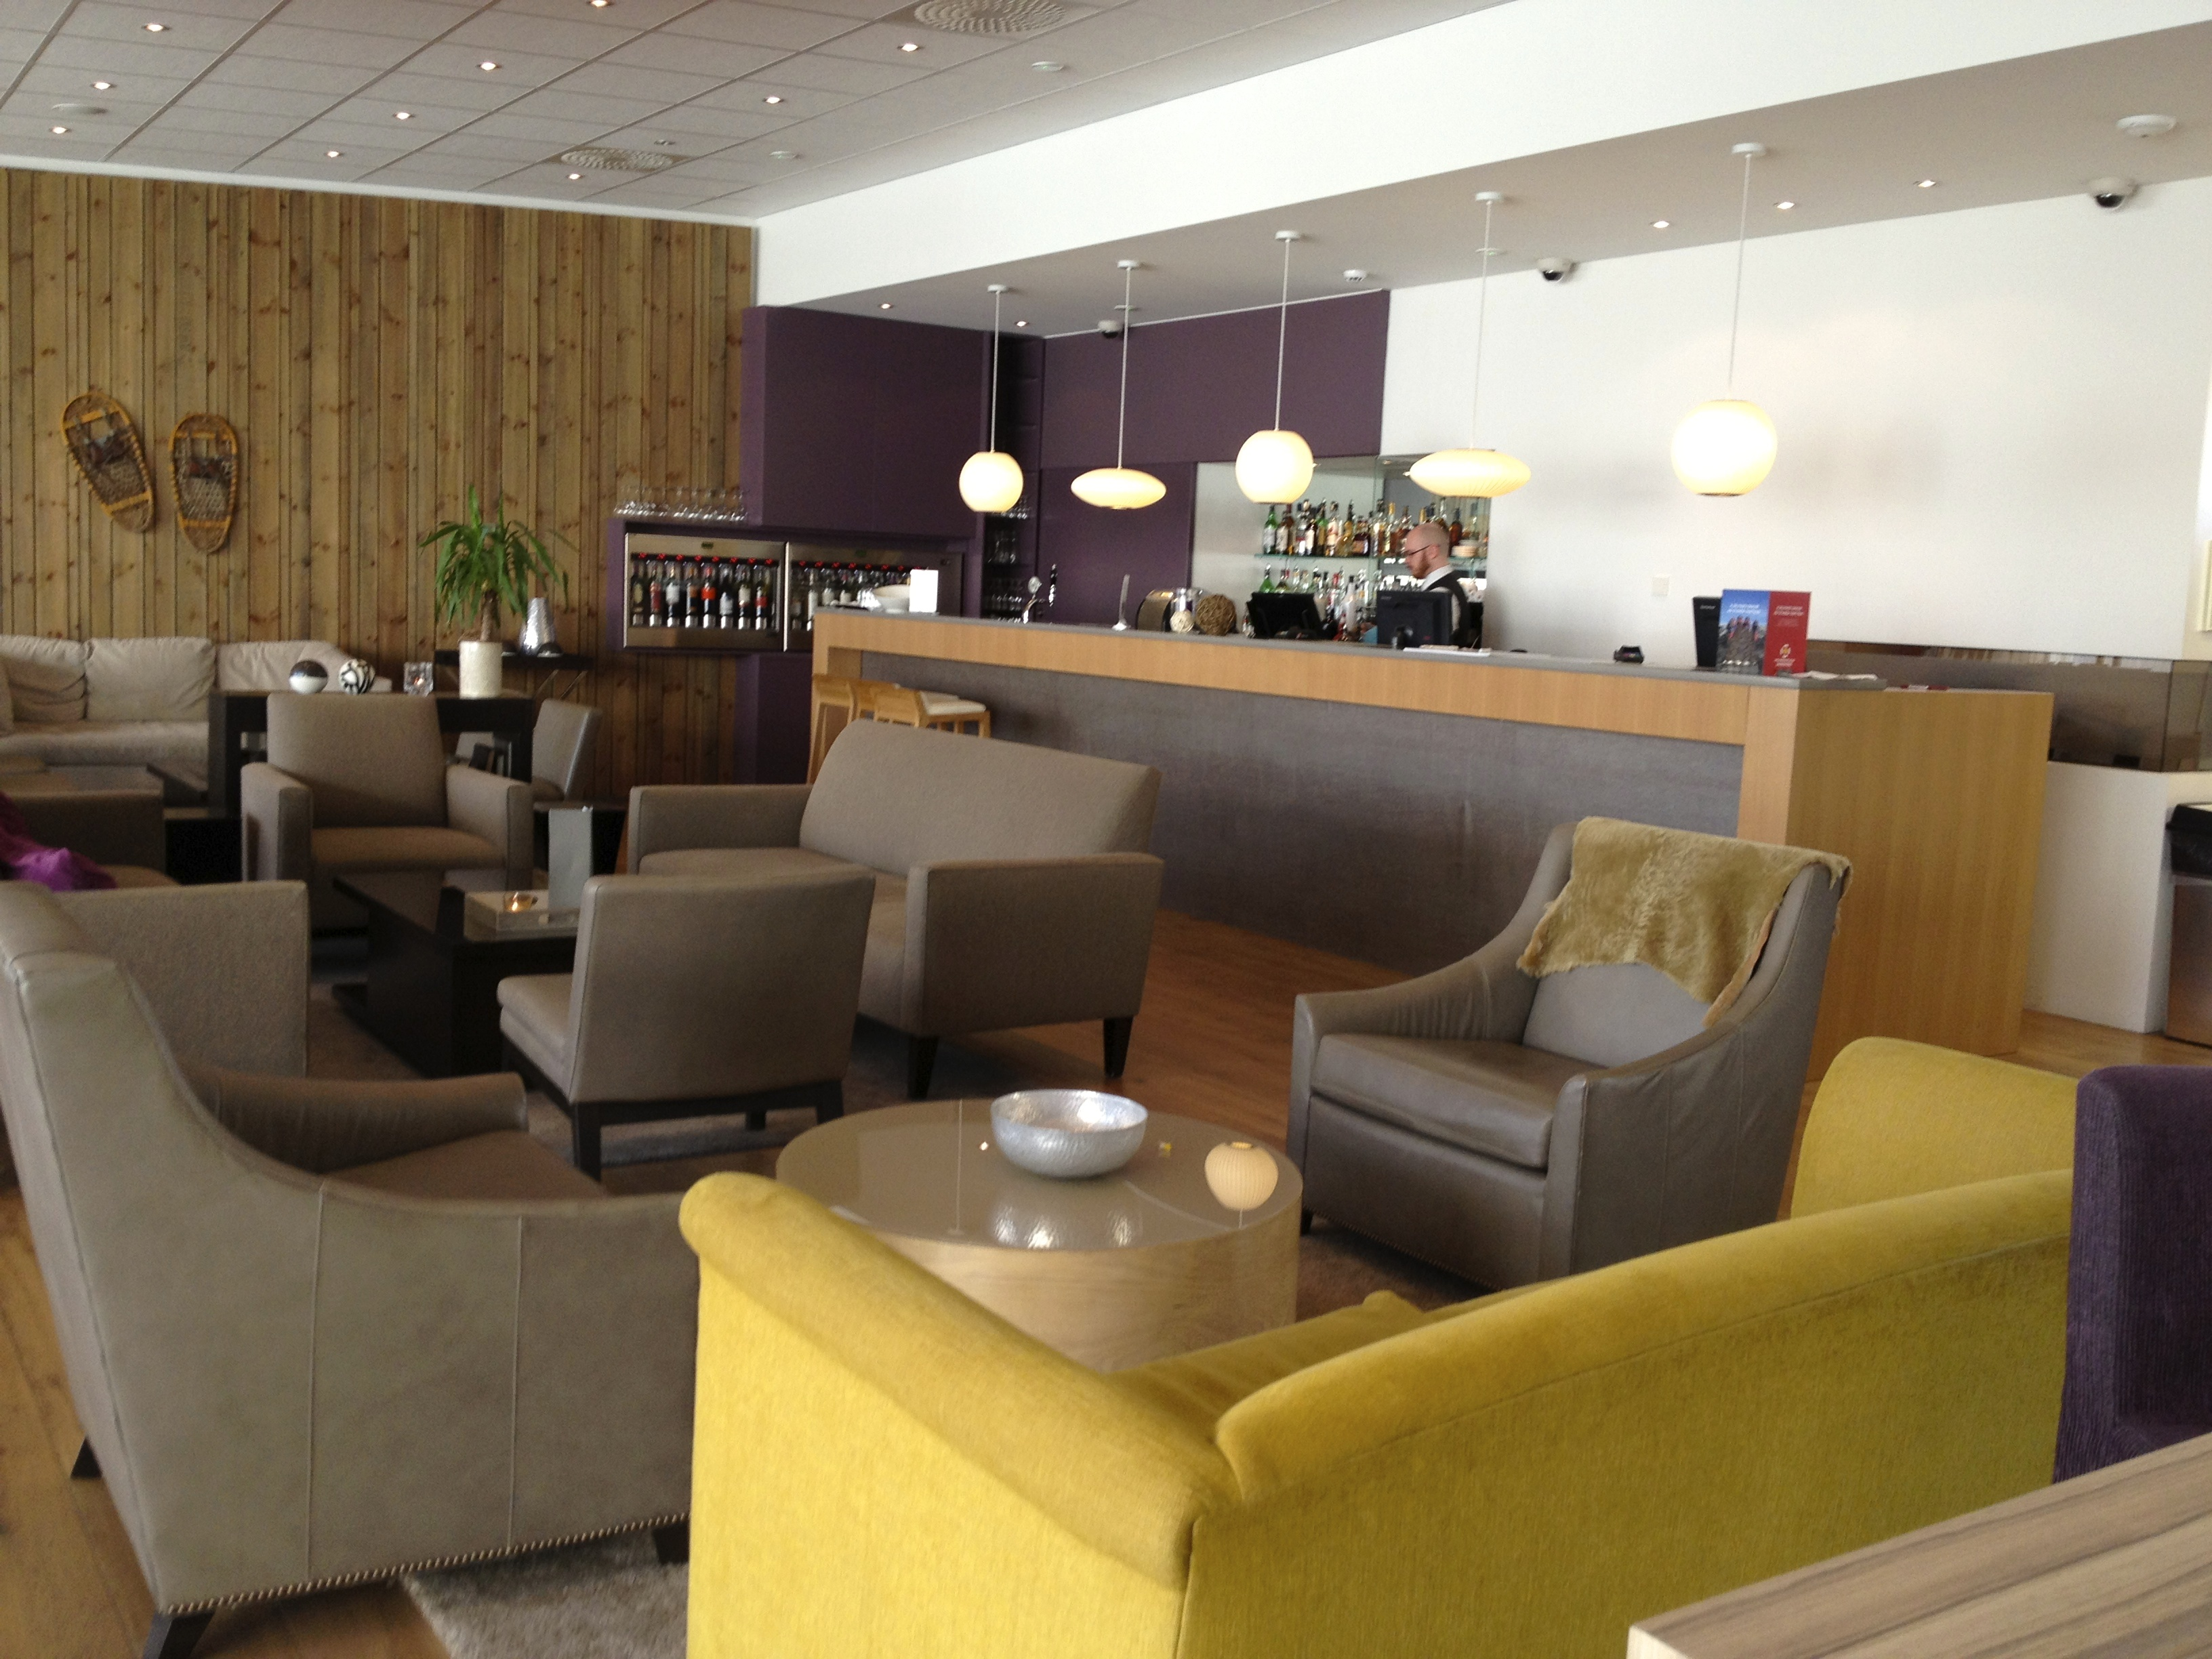 Lobby of IcelandAir Hotel in Akureyri